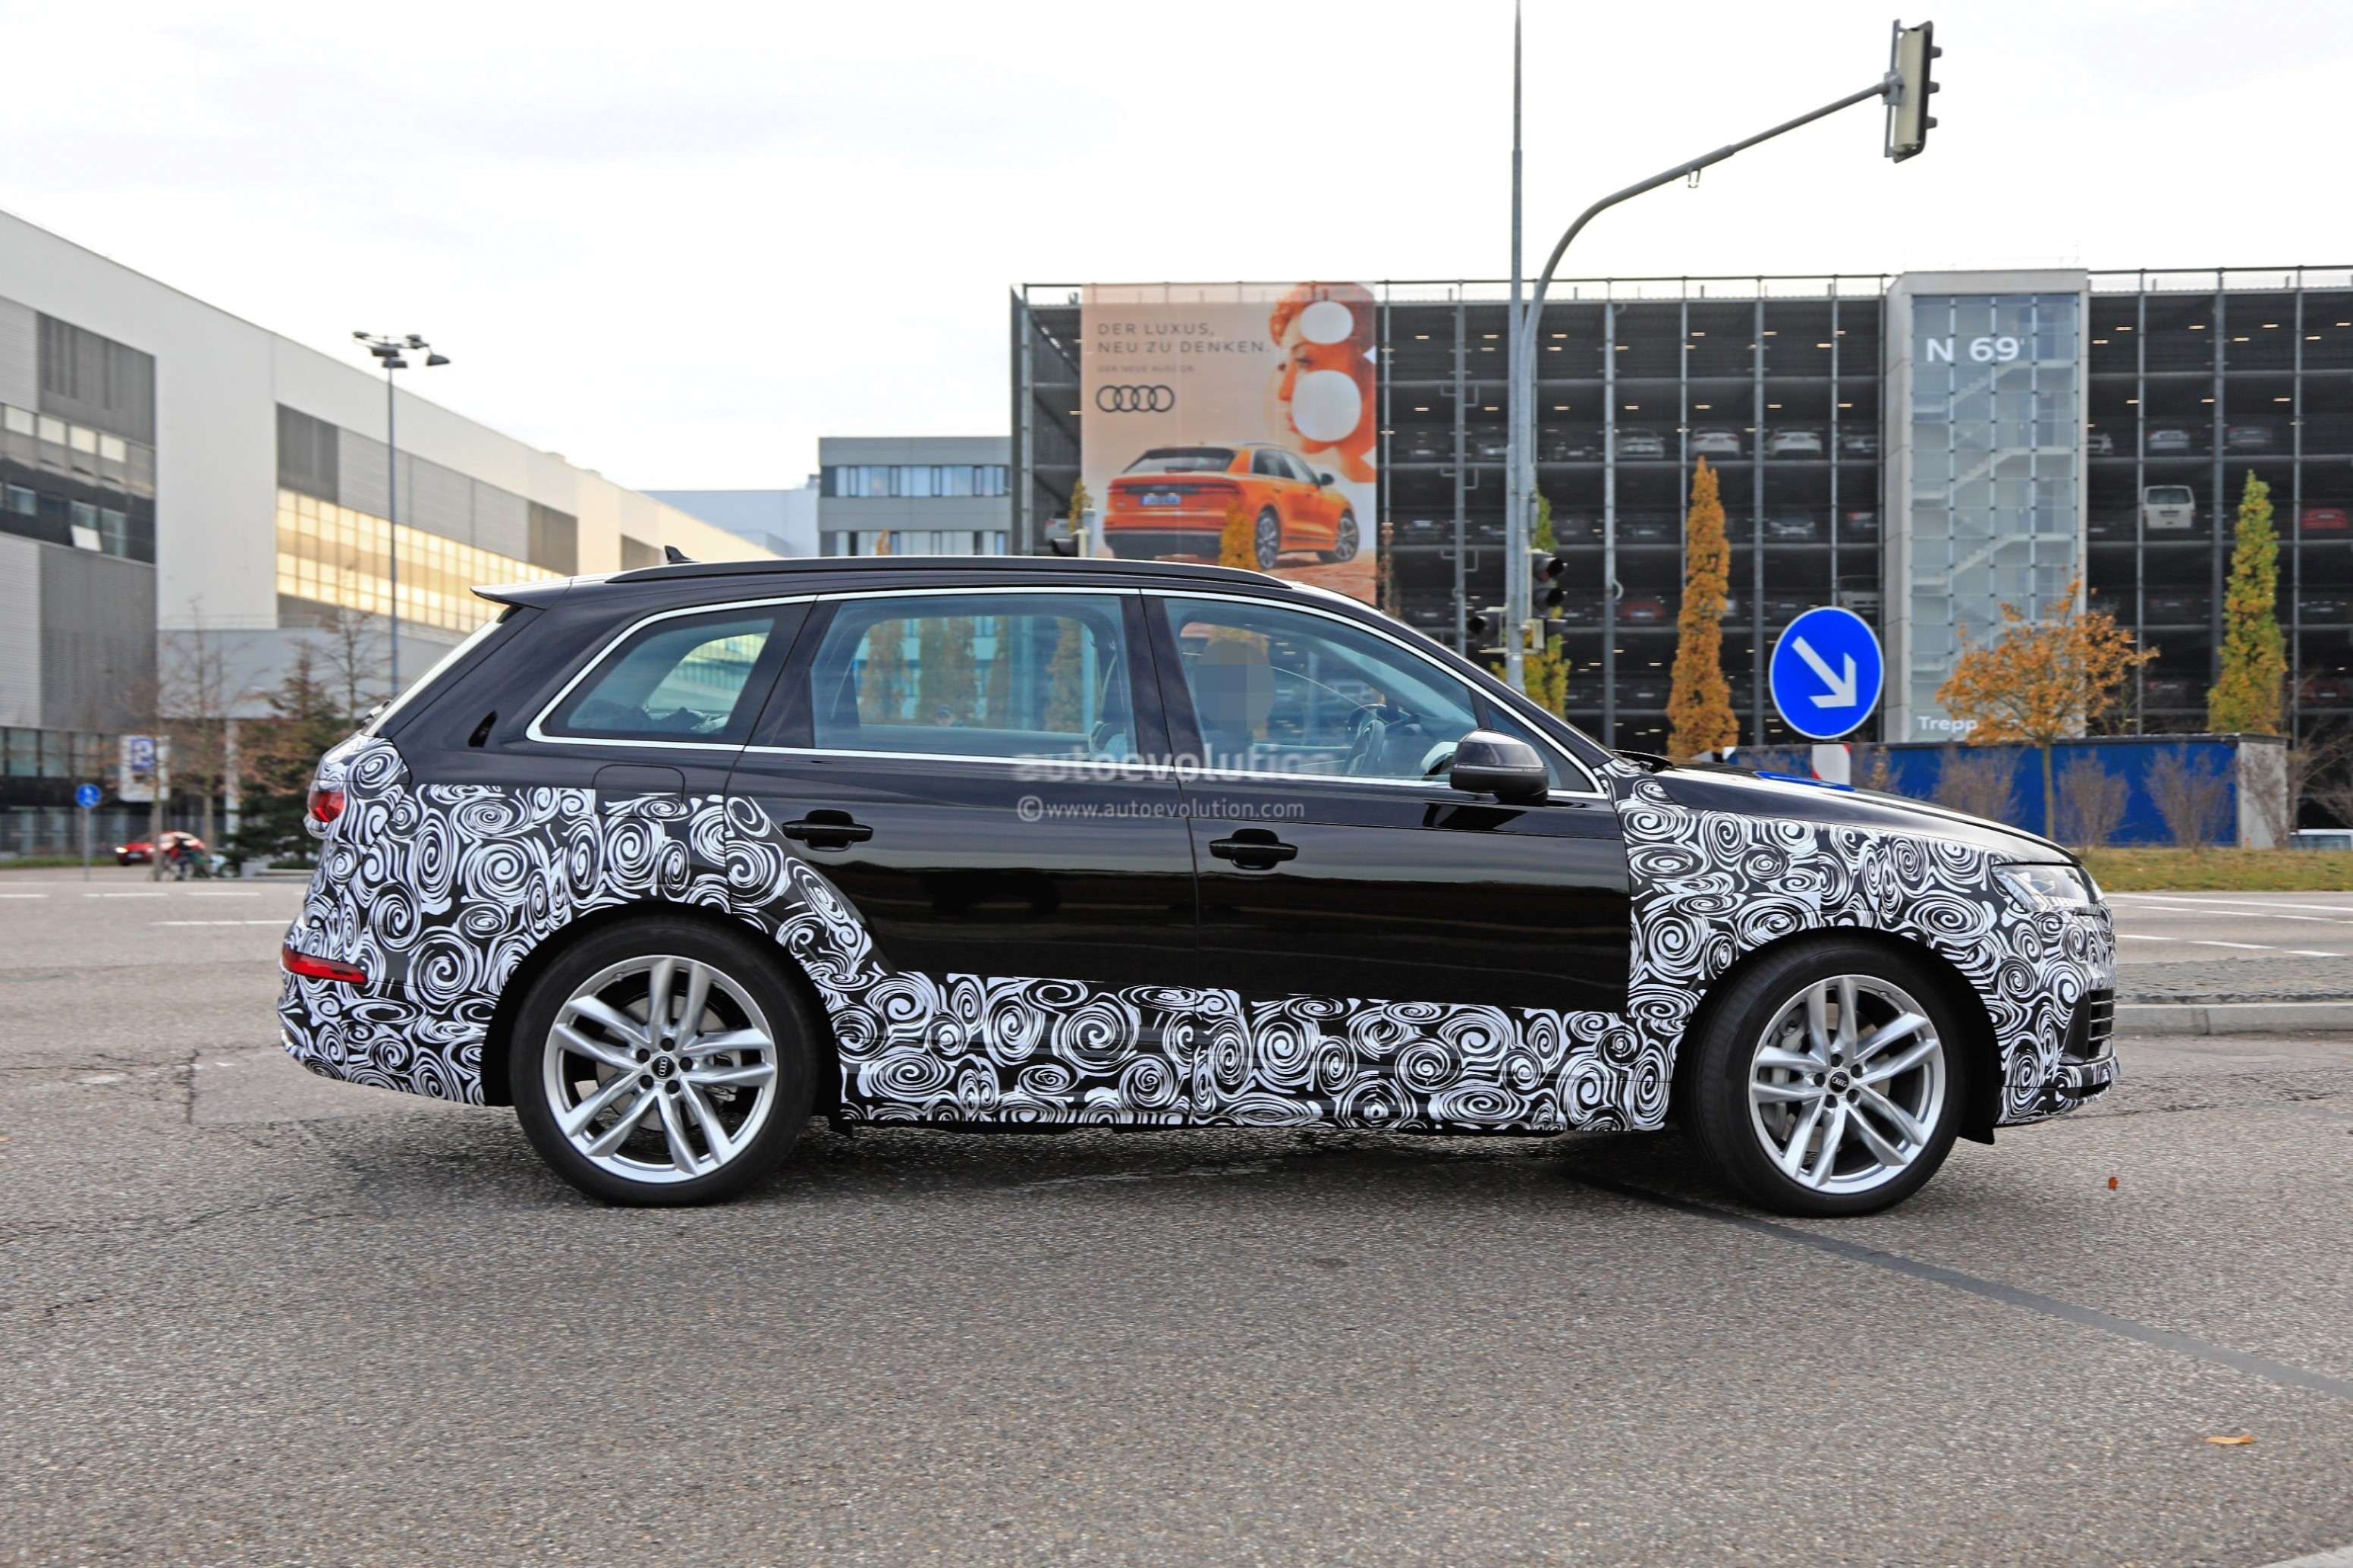 2020 Audi Q7 Facelift Spied, Features Dual-Screen Infotainment System From Q8 - autoevolution